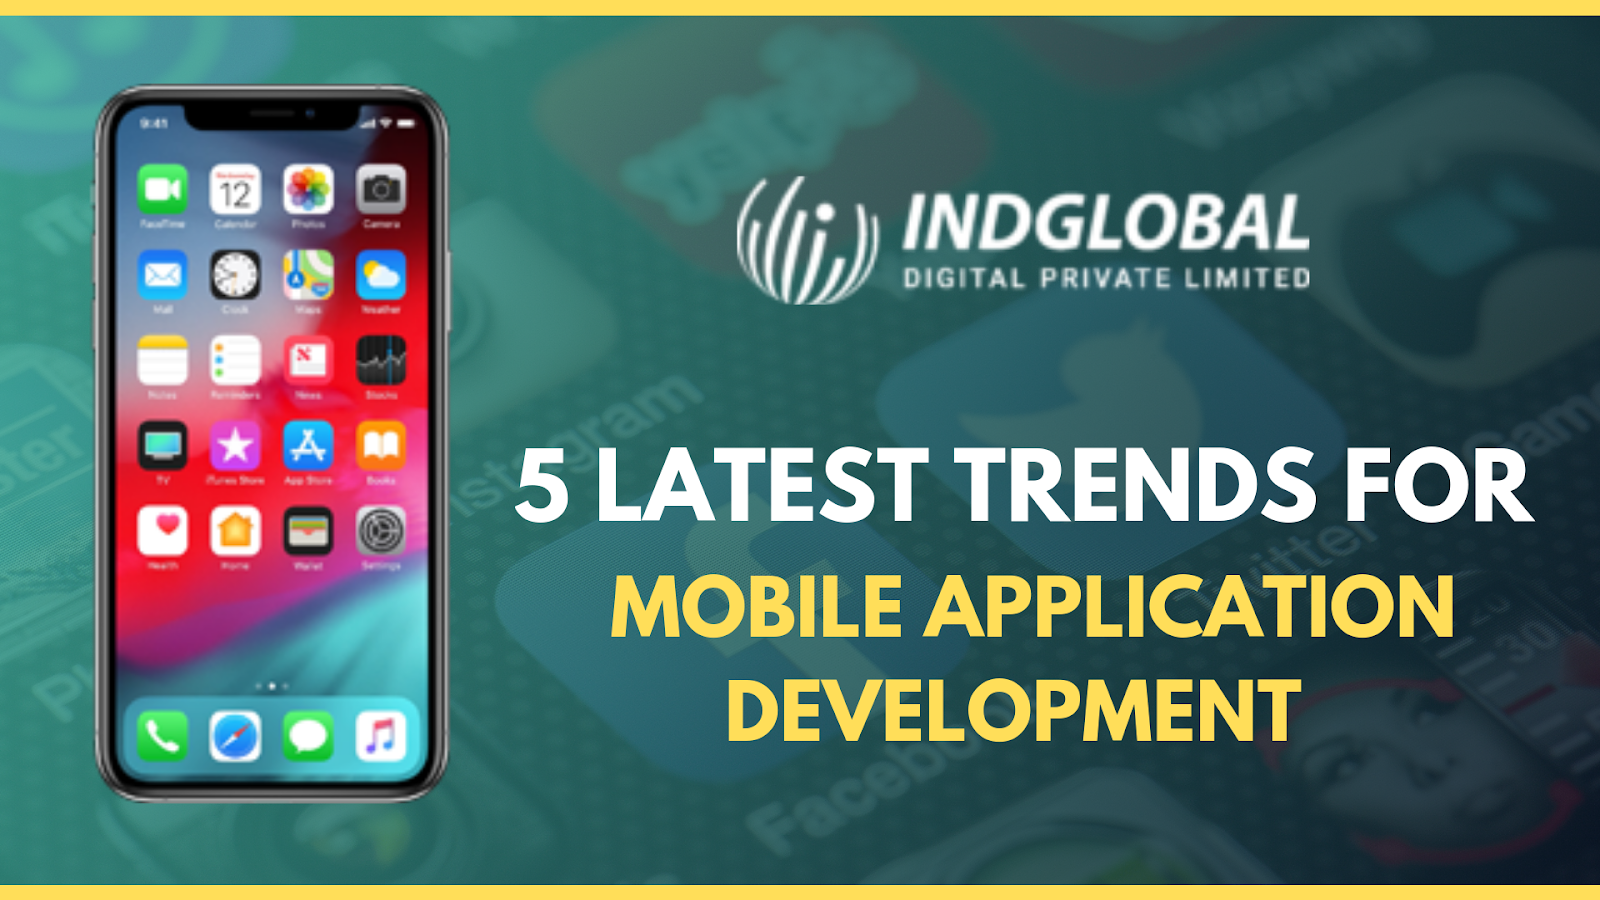 5 latest trends for mobile application development